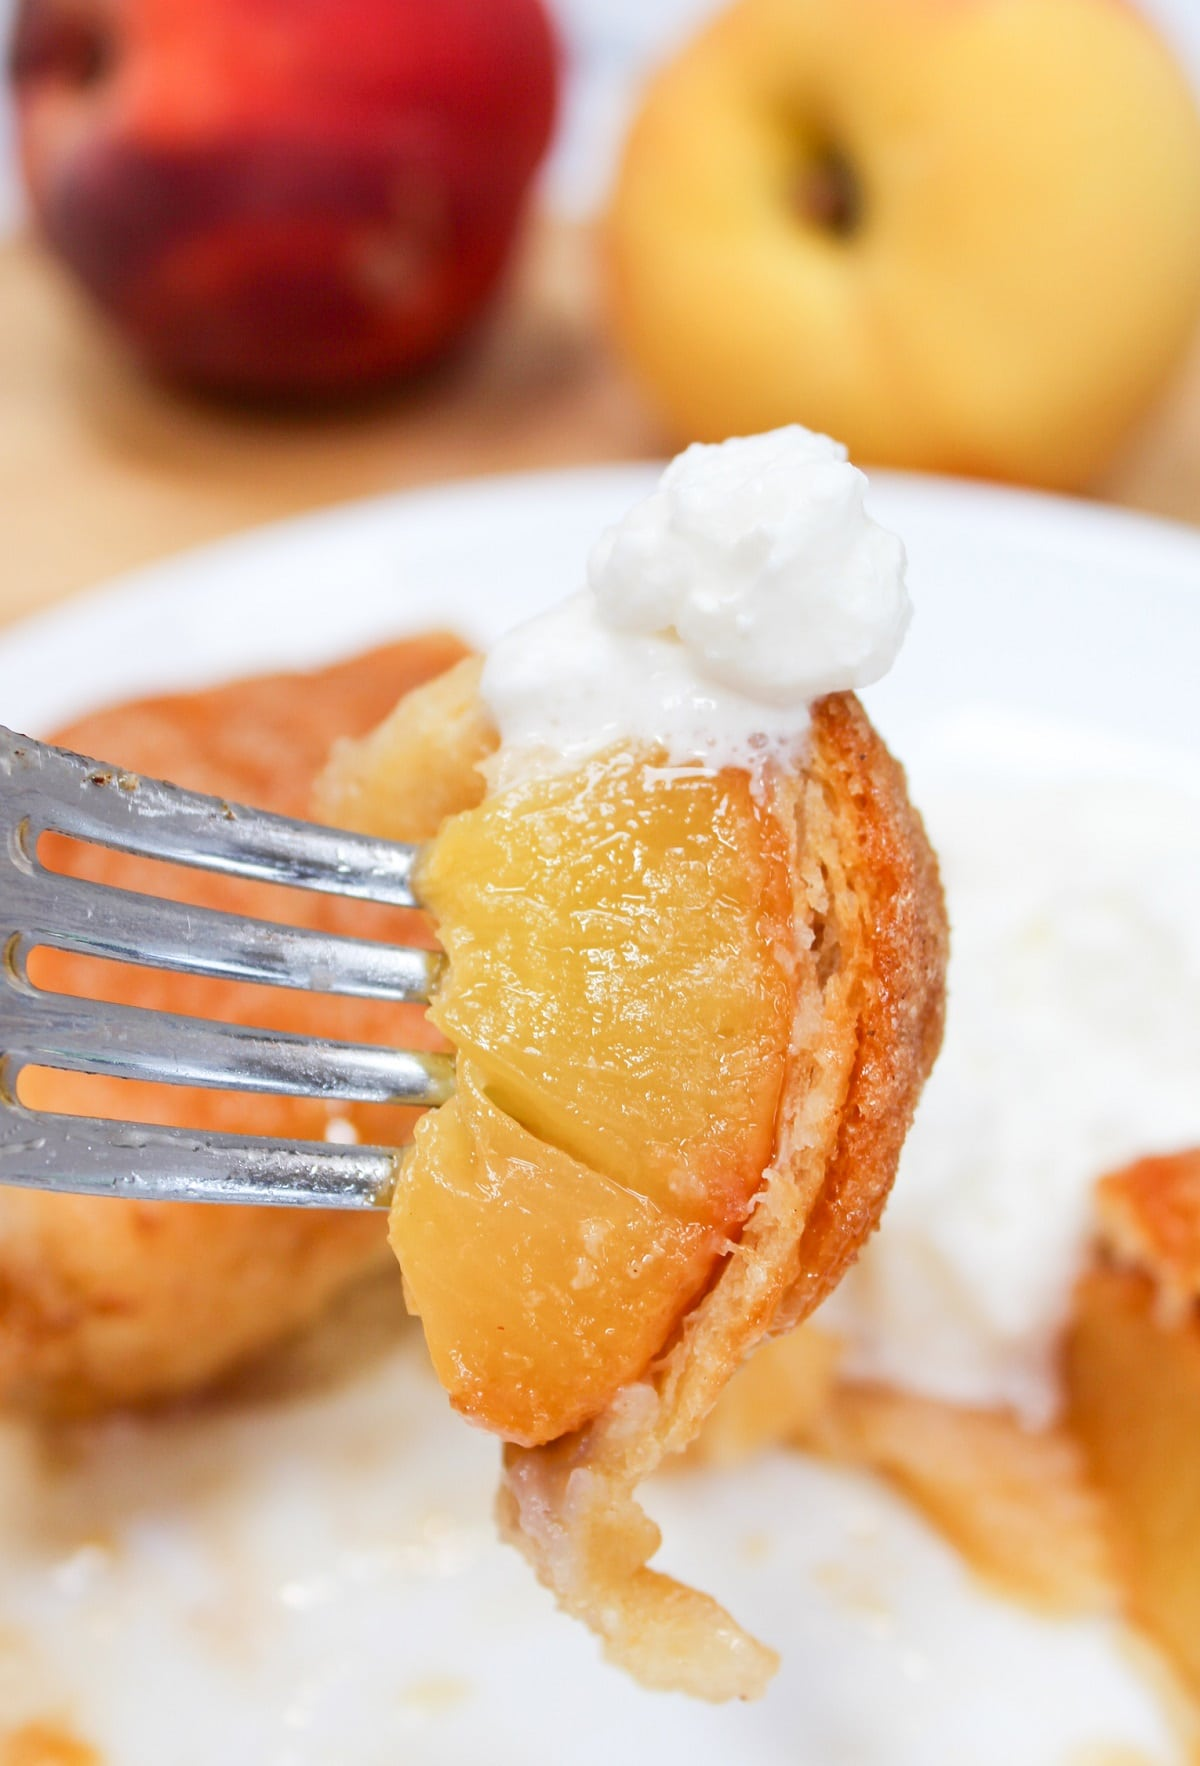 dumpling on a fork with whipped cream on top